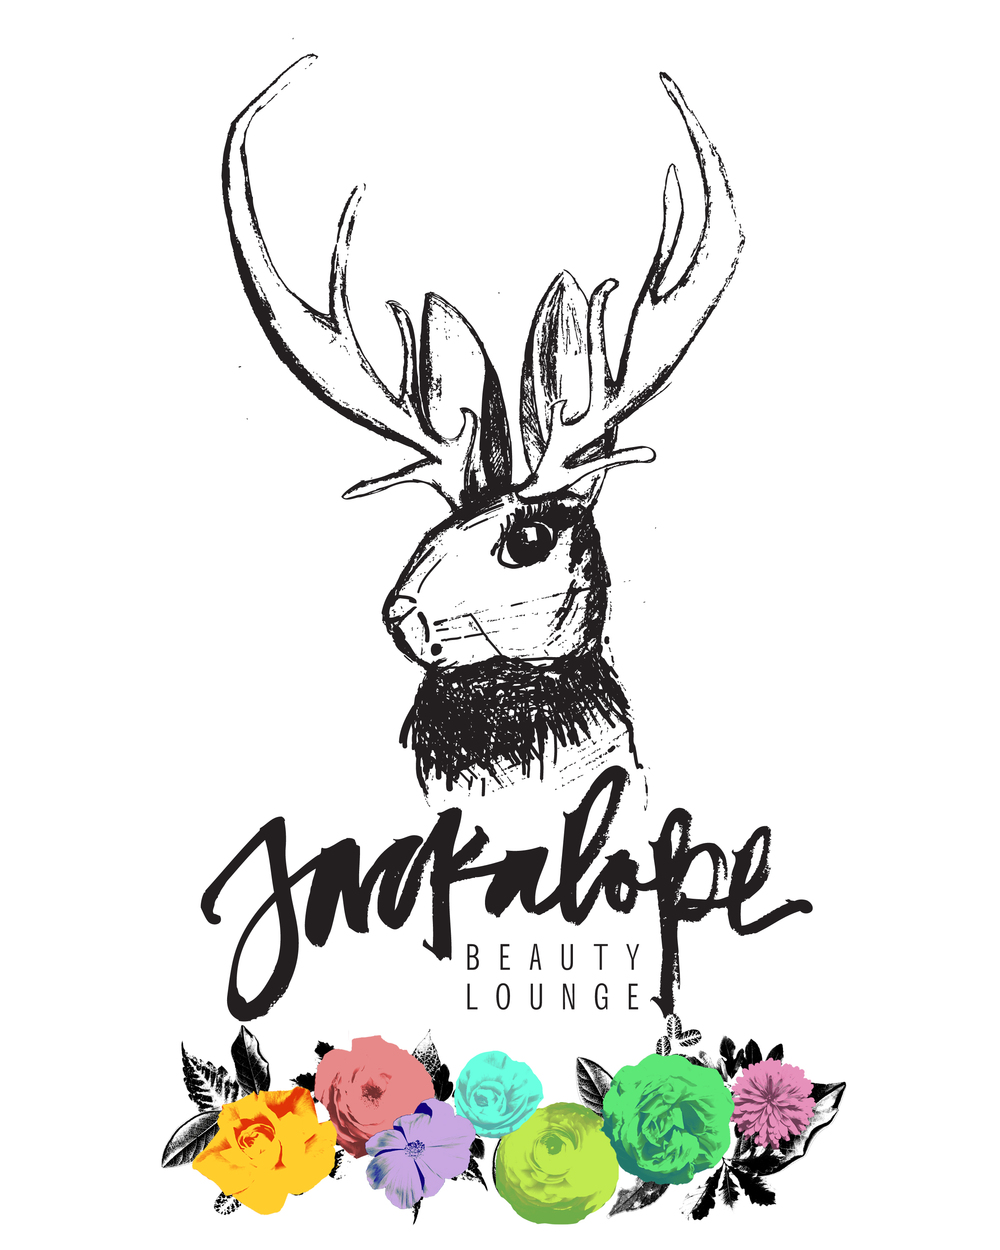 jackalope-big design 2.jpg